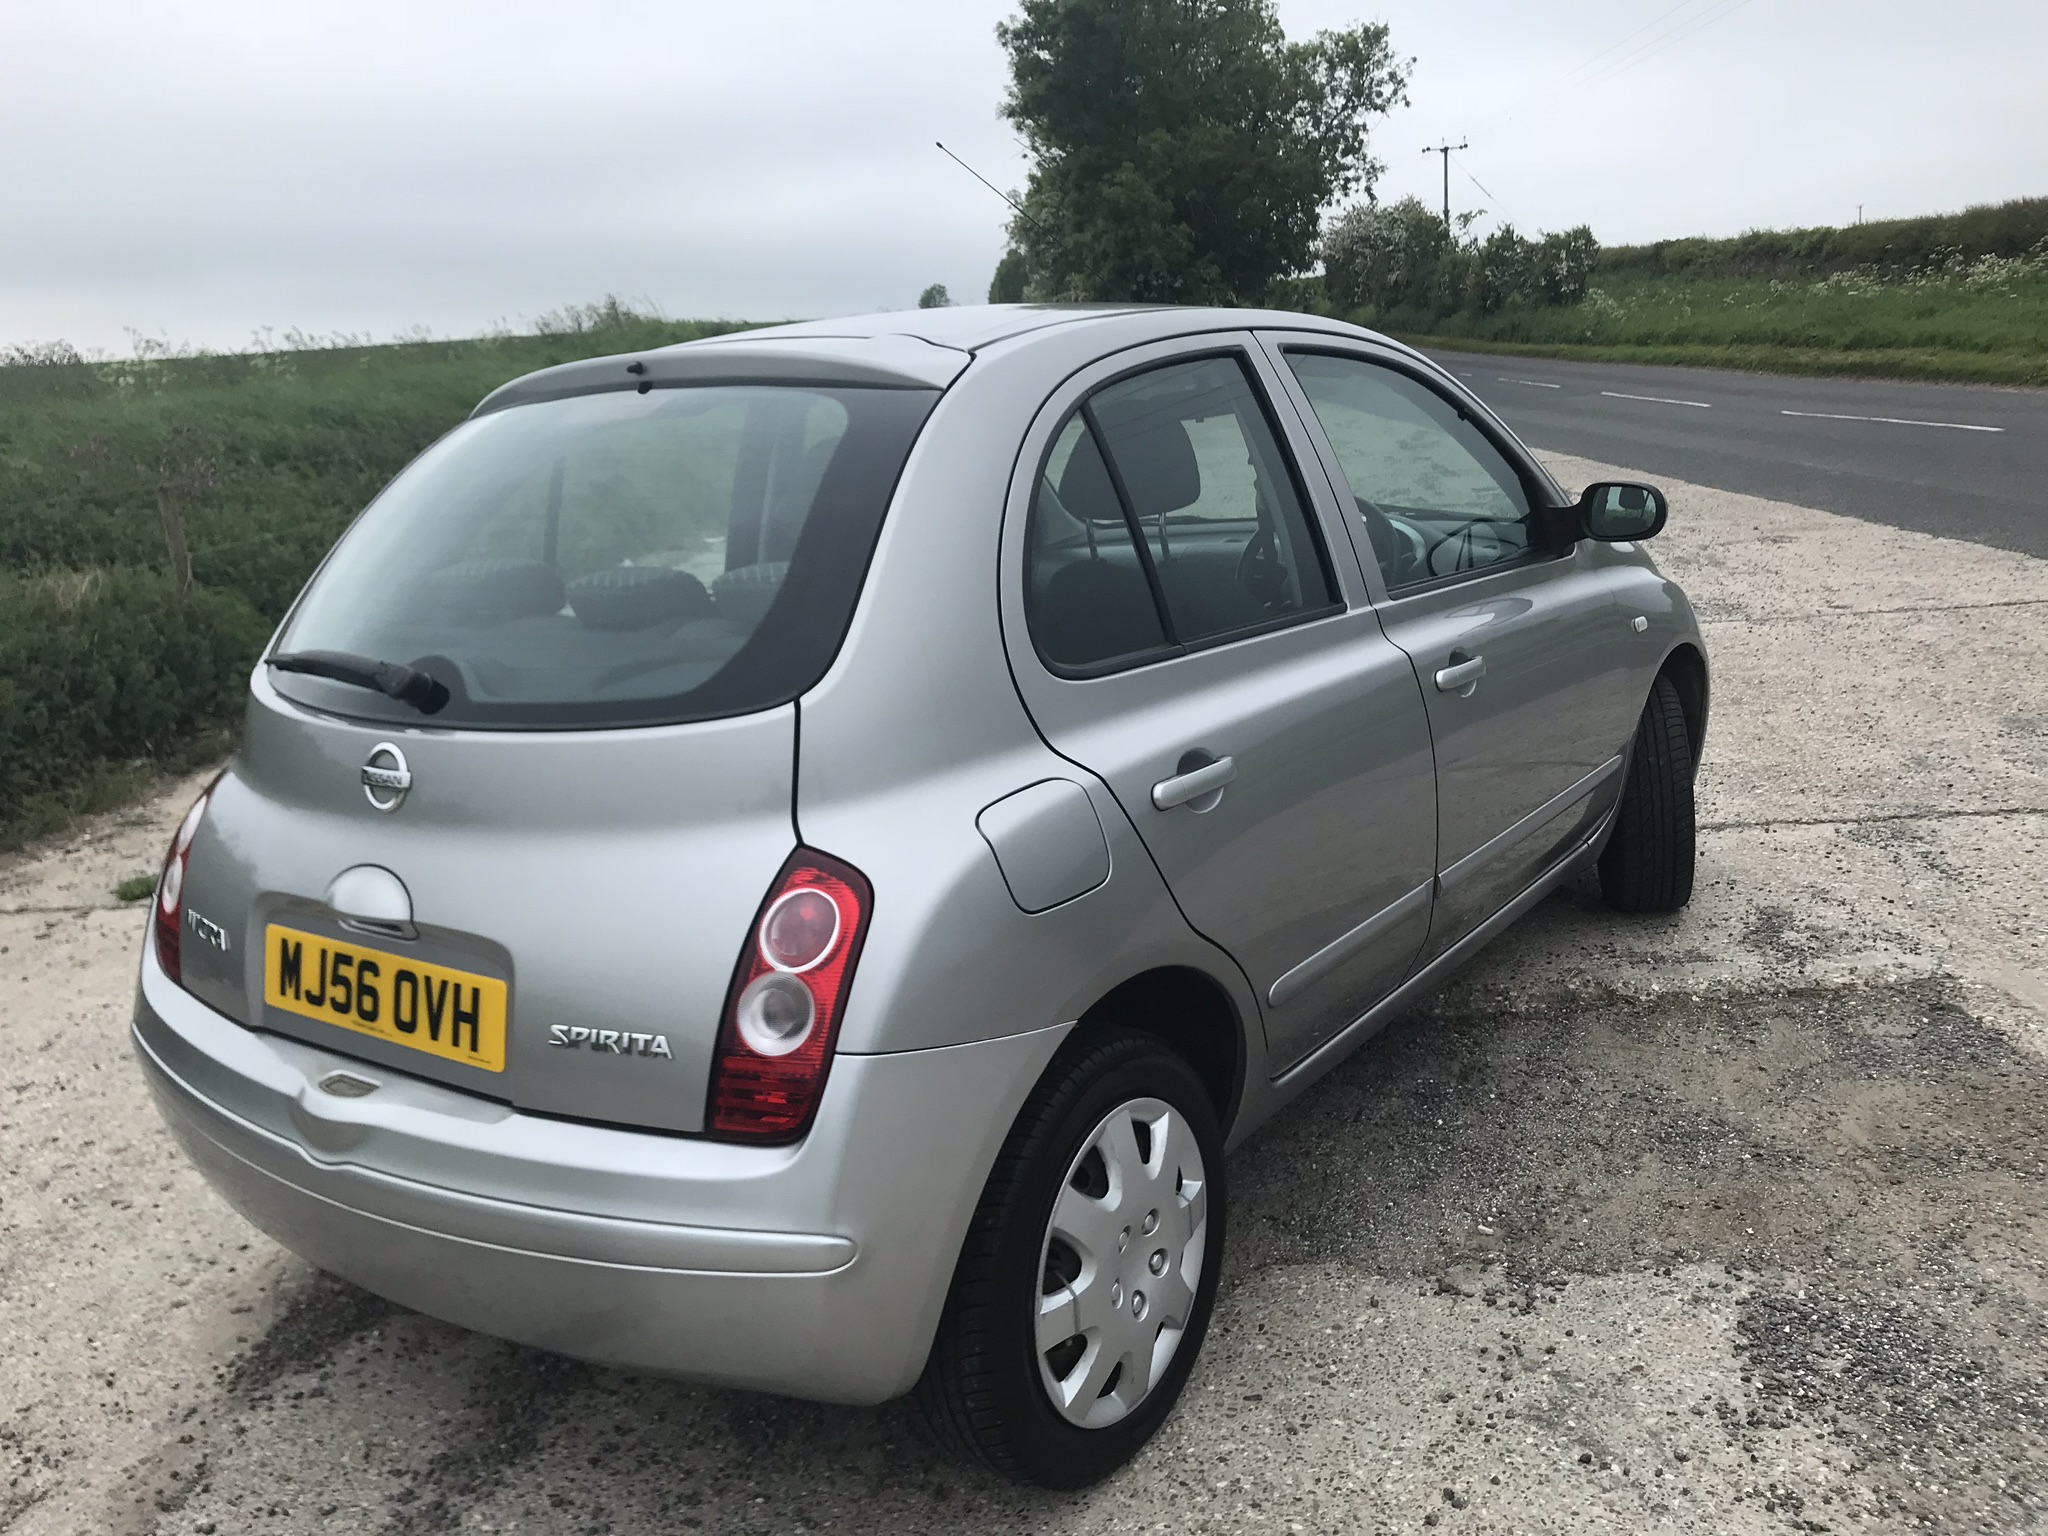 Nissan Micra Spirta 5 Door In Silver Sold full